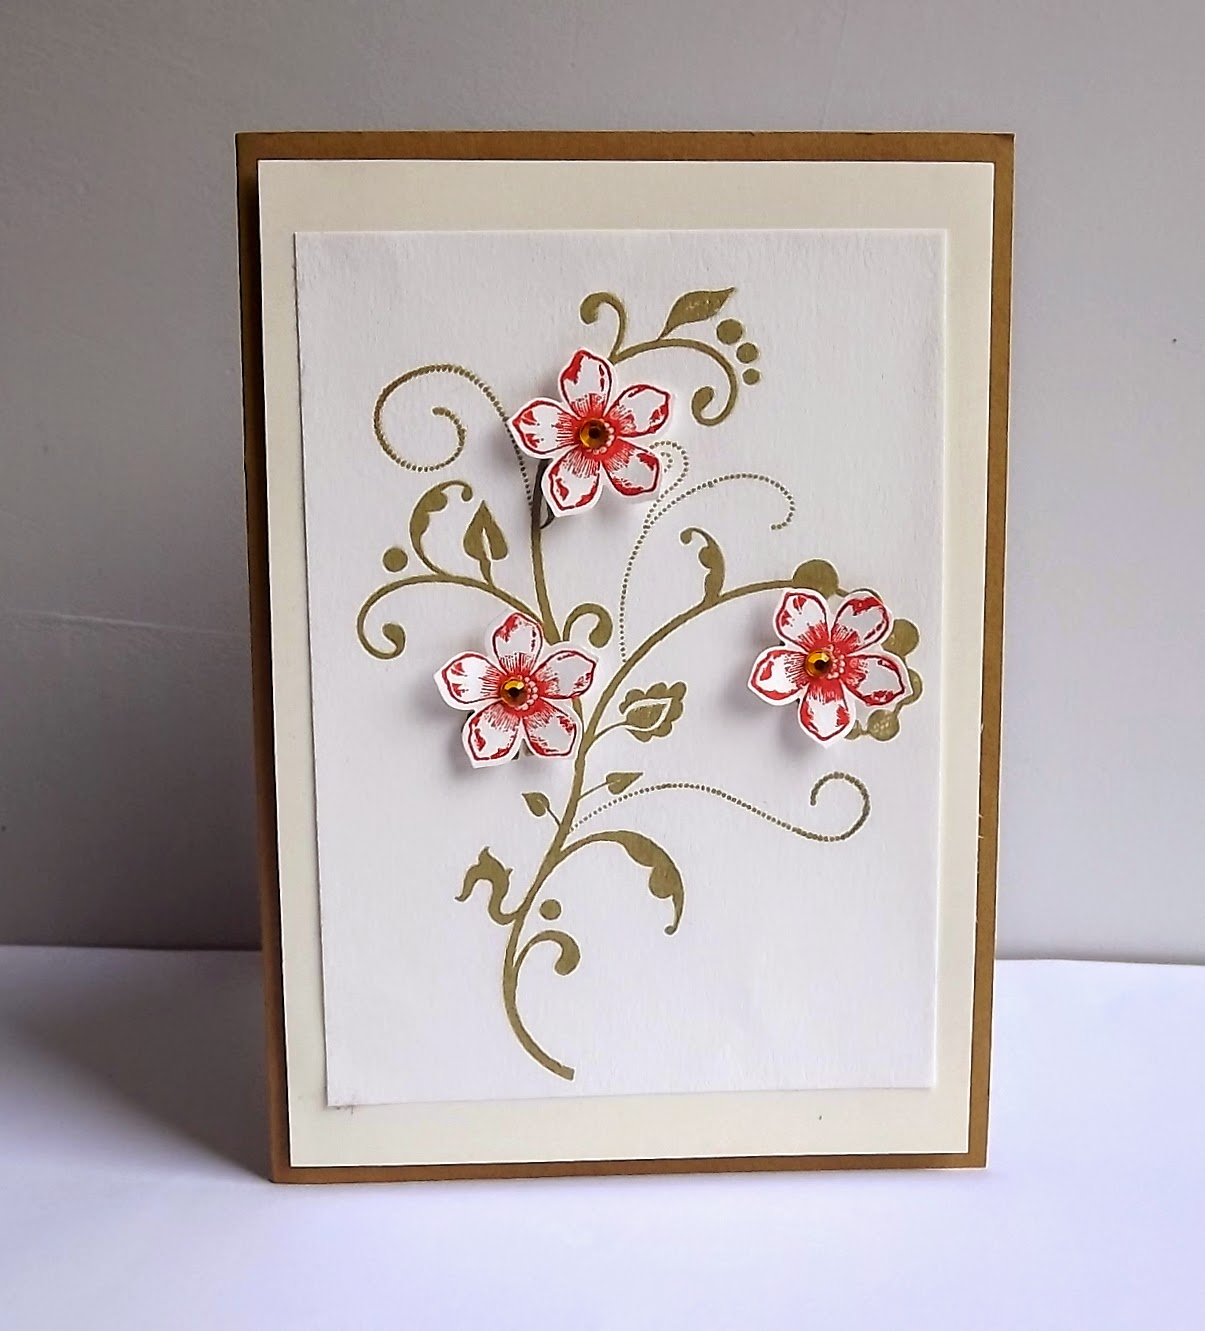 Stampin Up! Flowering Flourishes card